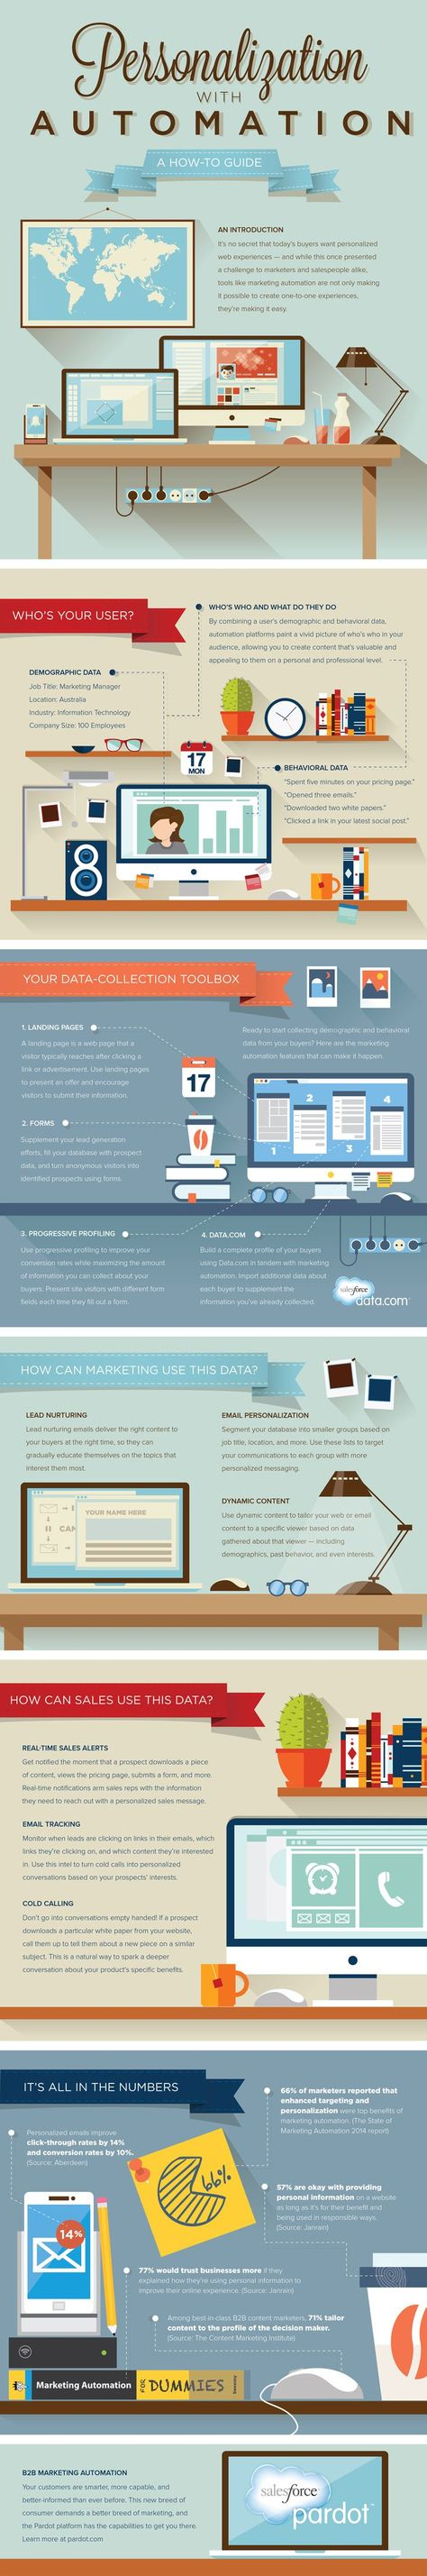 Personalization — Through Automation [INFOGRAPHIC]